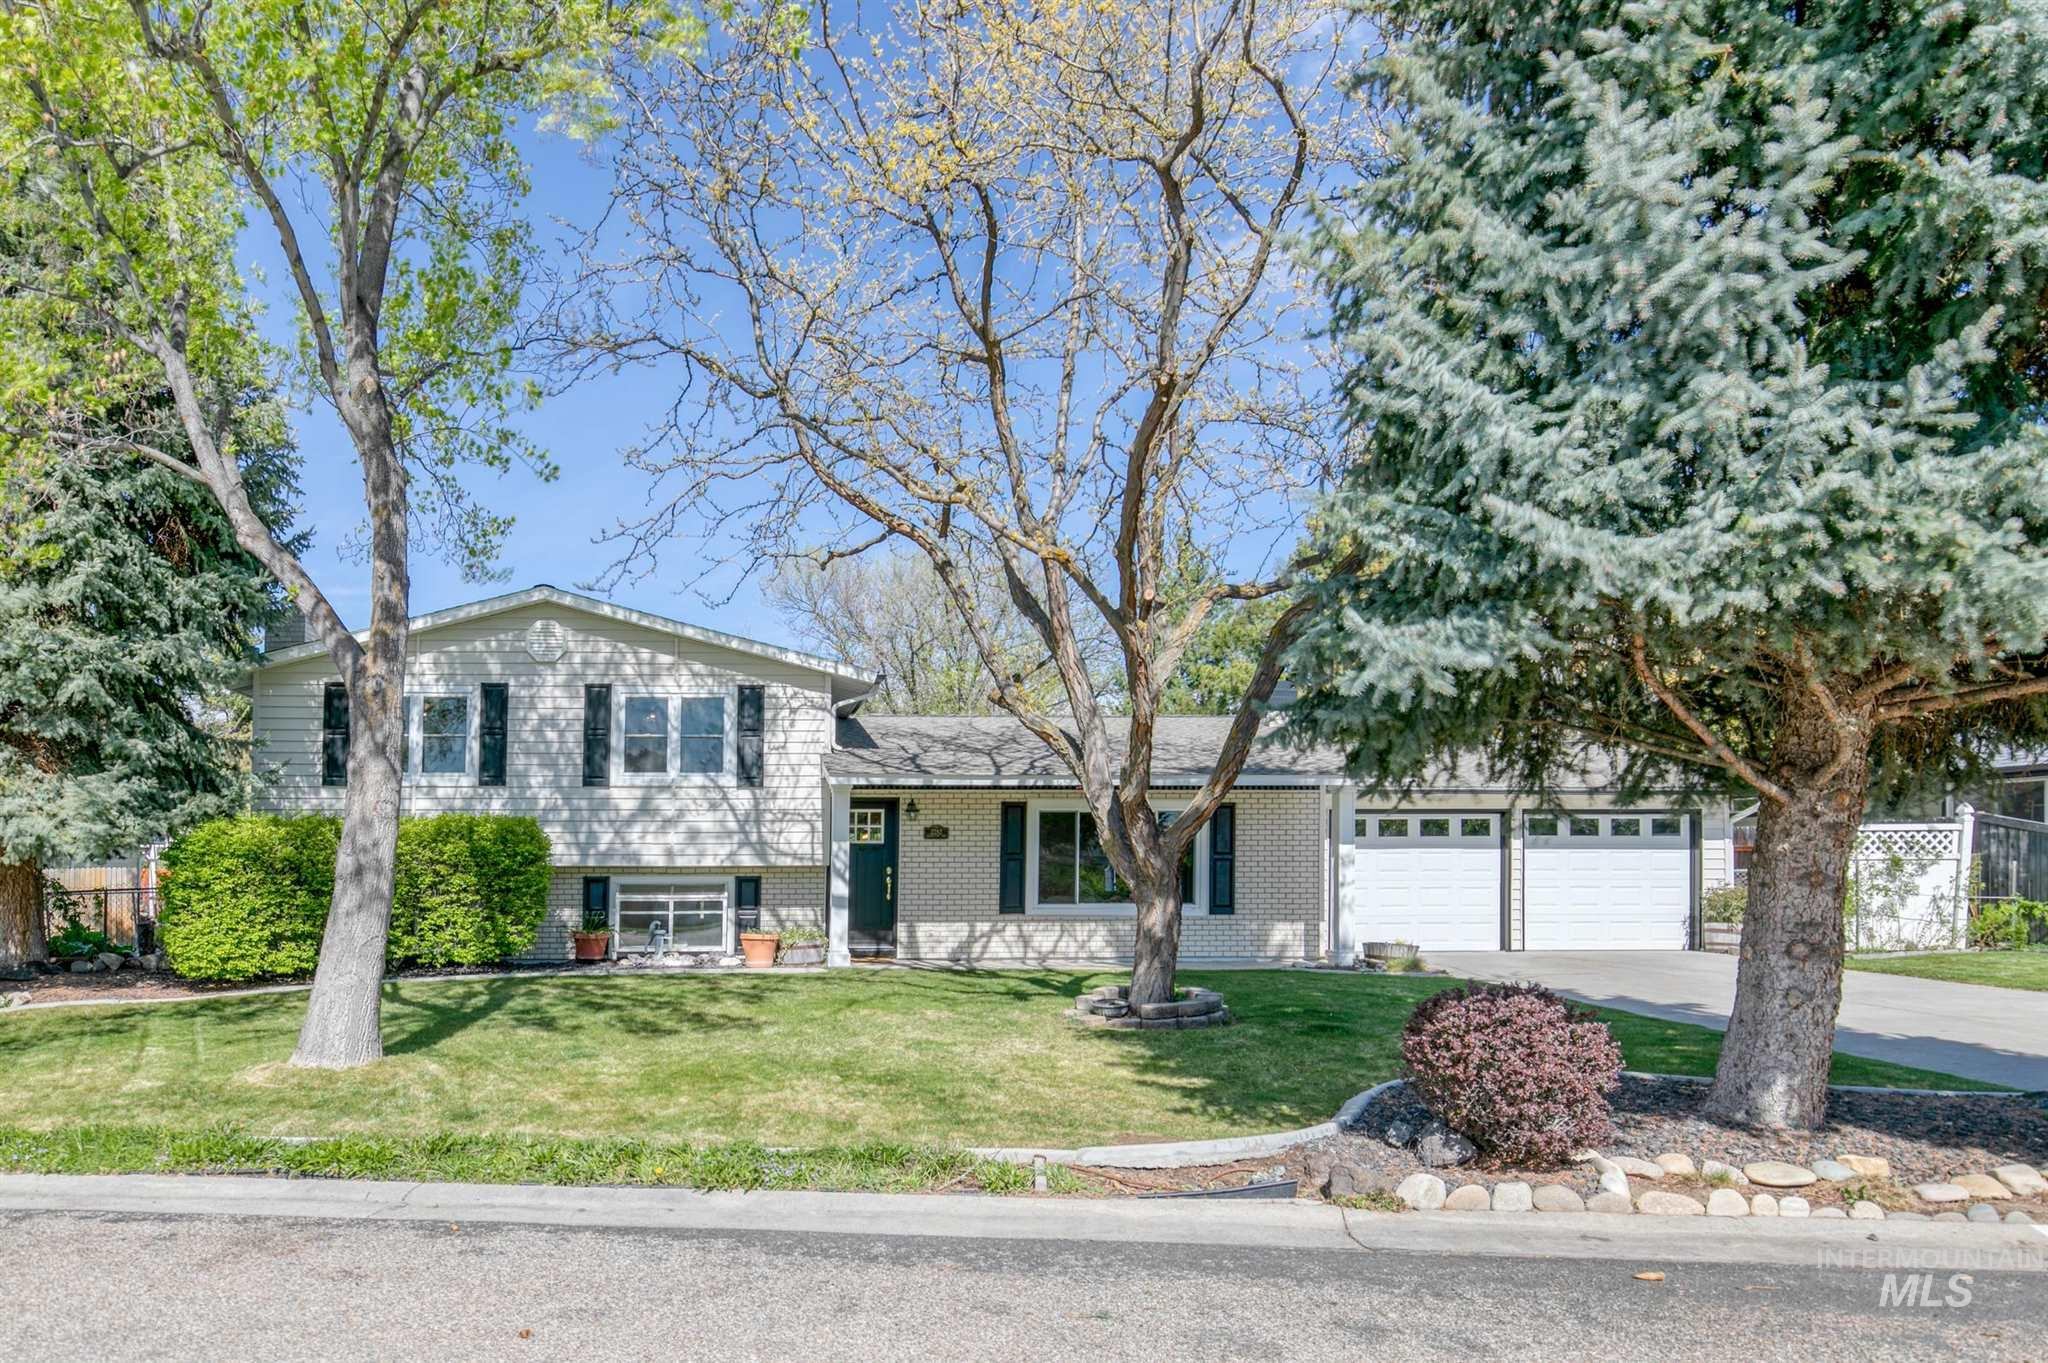 2282 S Ridgeview Property Photo - Boise, ID real estate listing